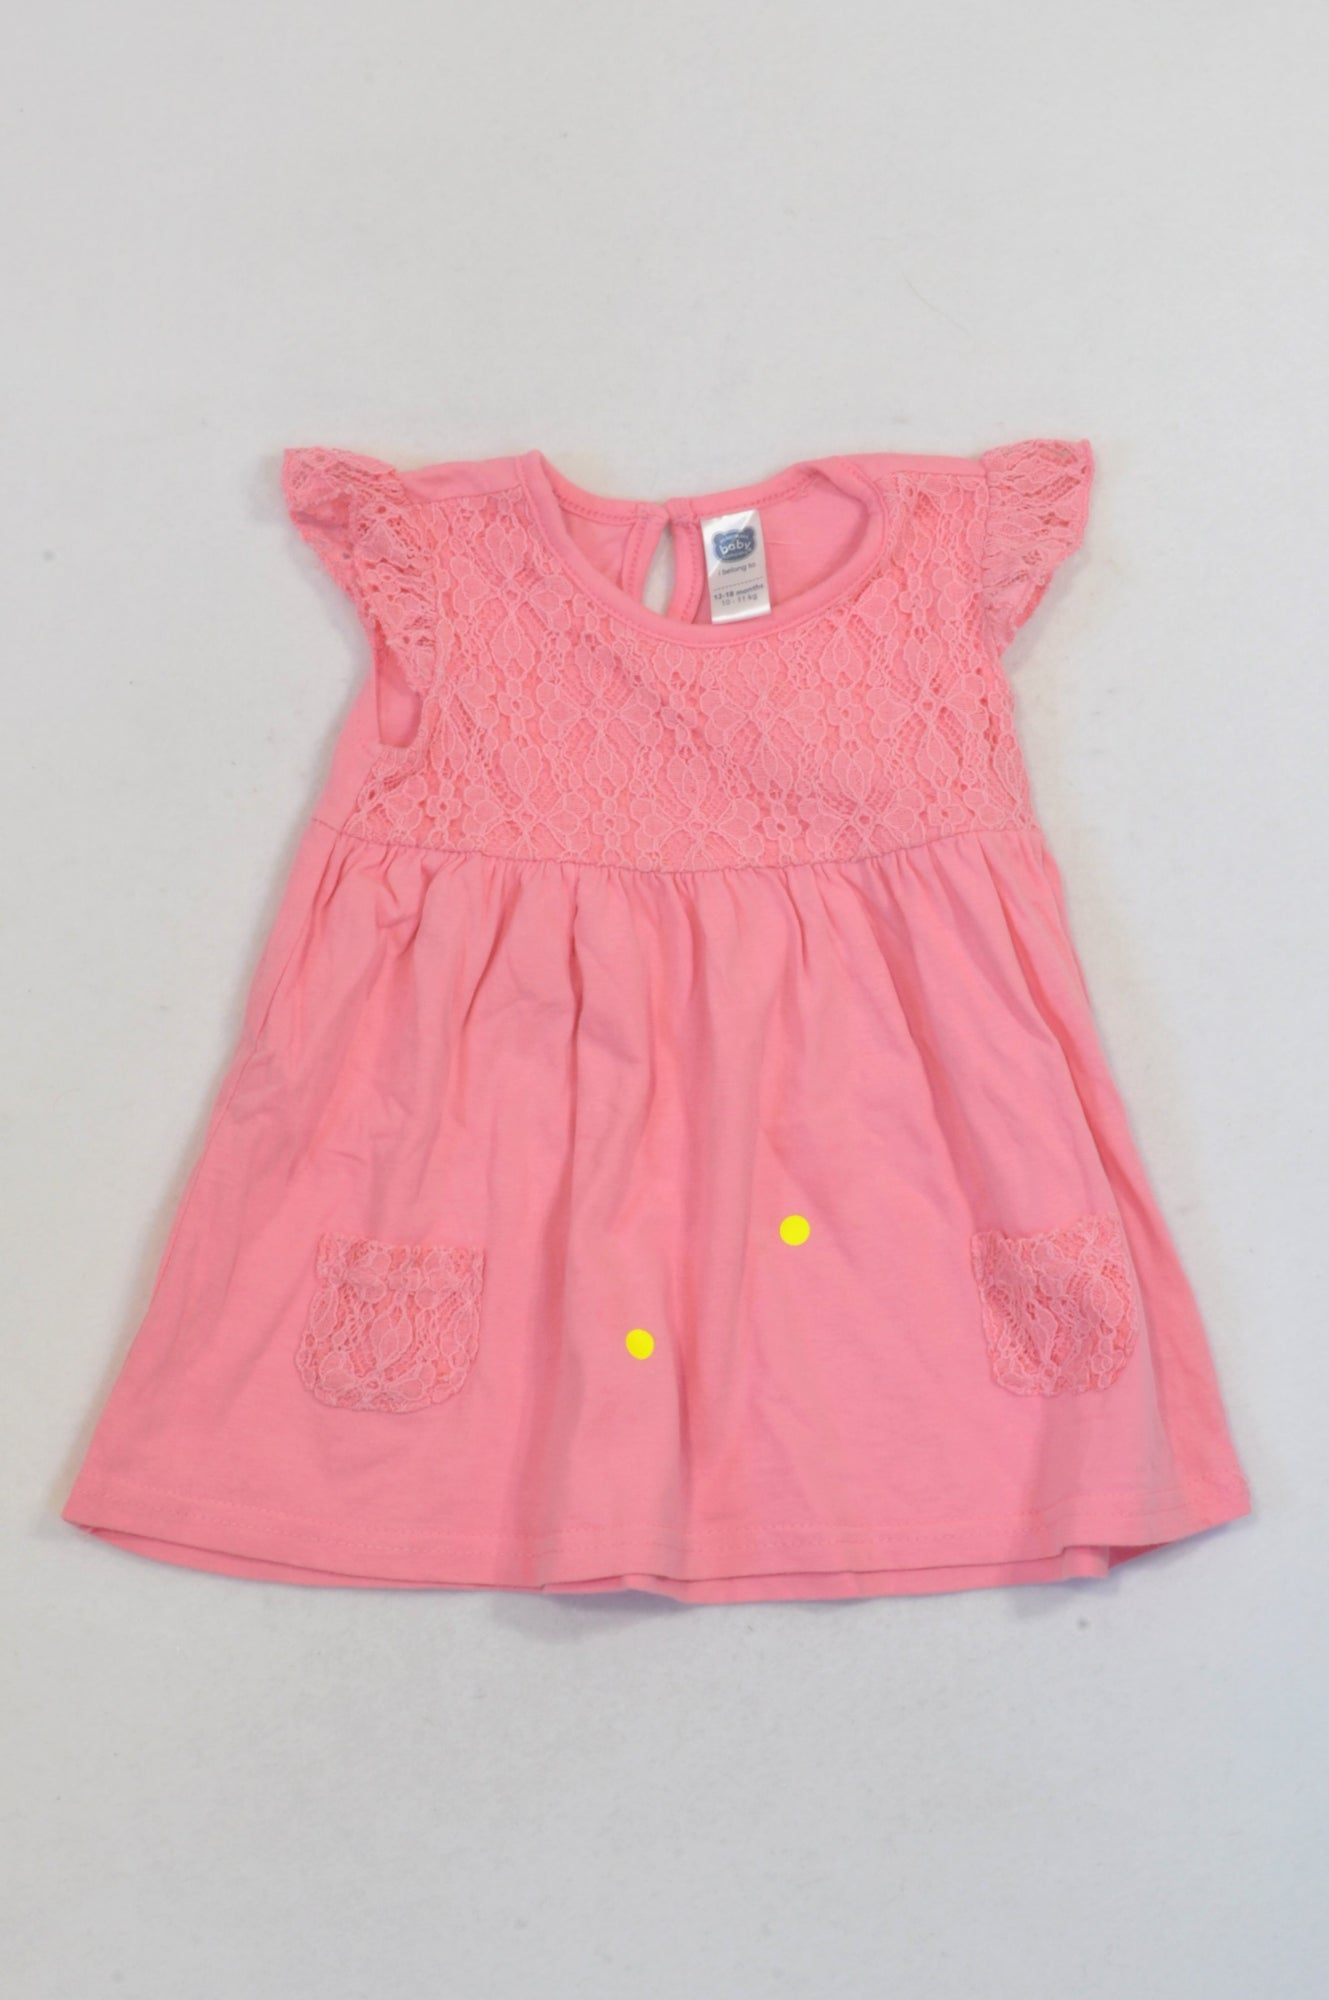 Ackermans Pink Lace Overlay Babydoll Dress Girls 12-18 months